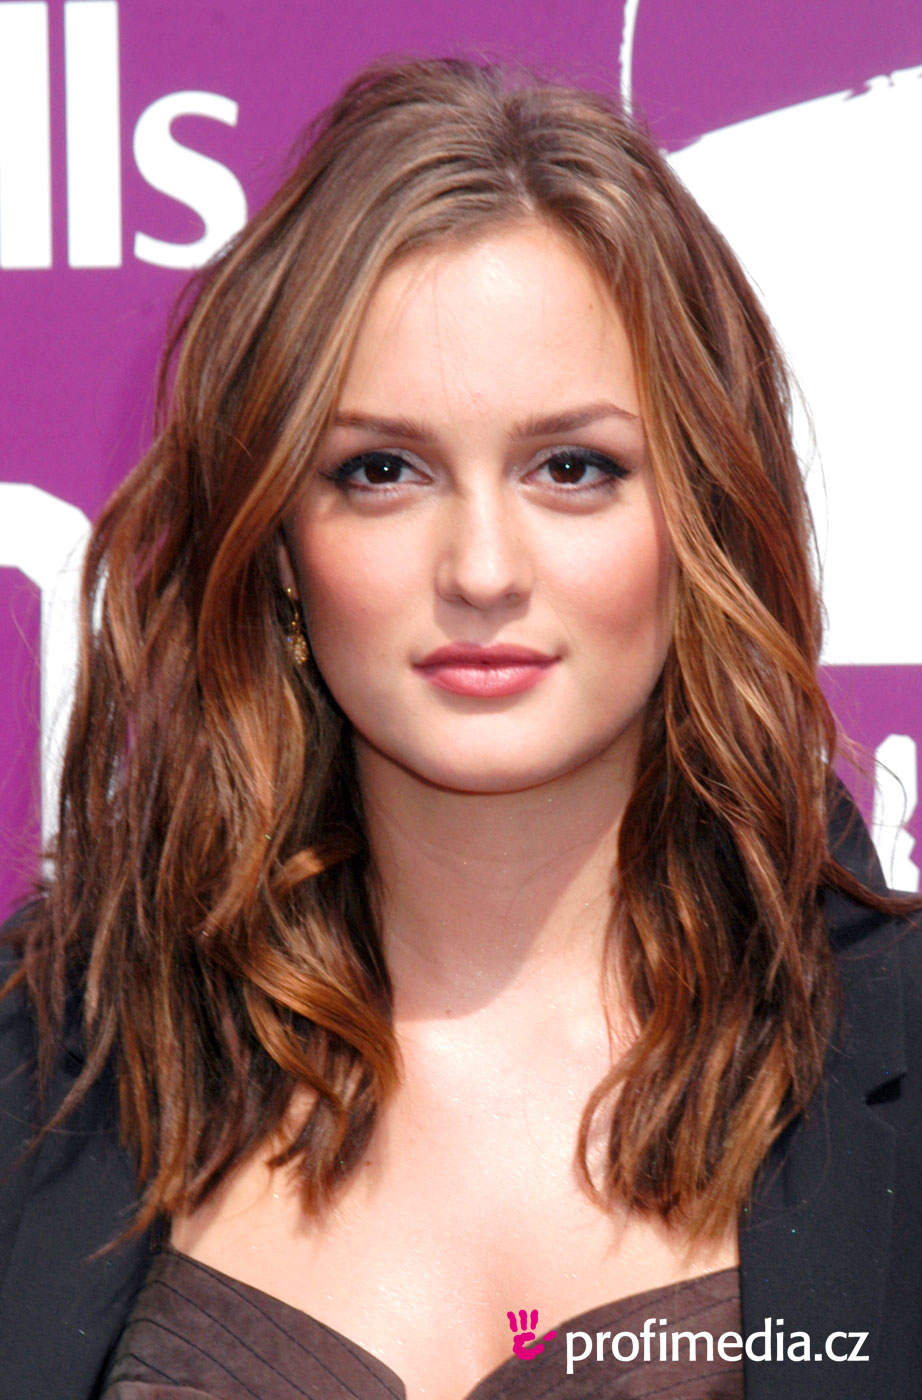 Leighton Meester Images Fashion Magazine Hd Wallpaper And: Leighton Meester